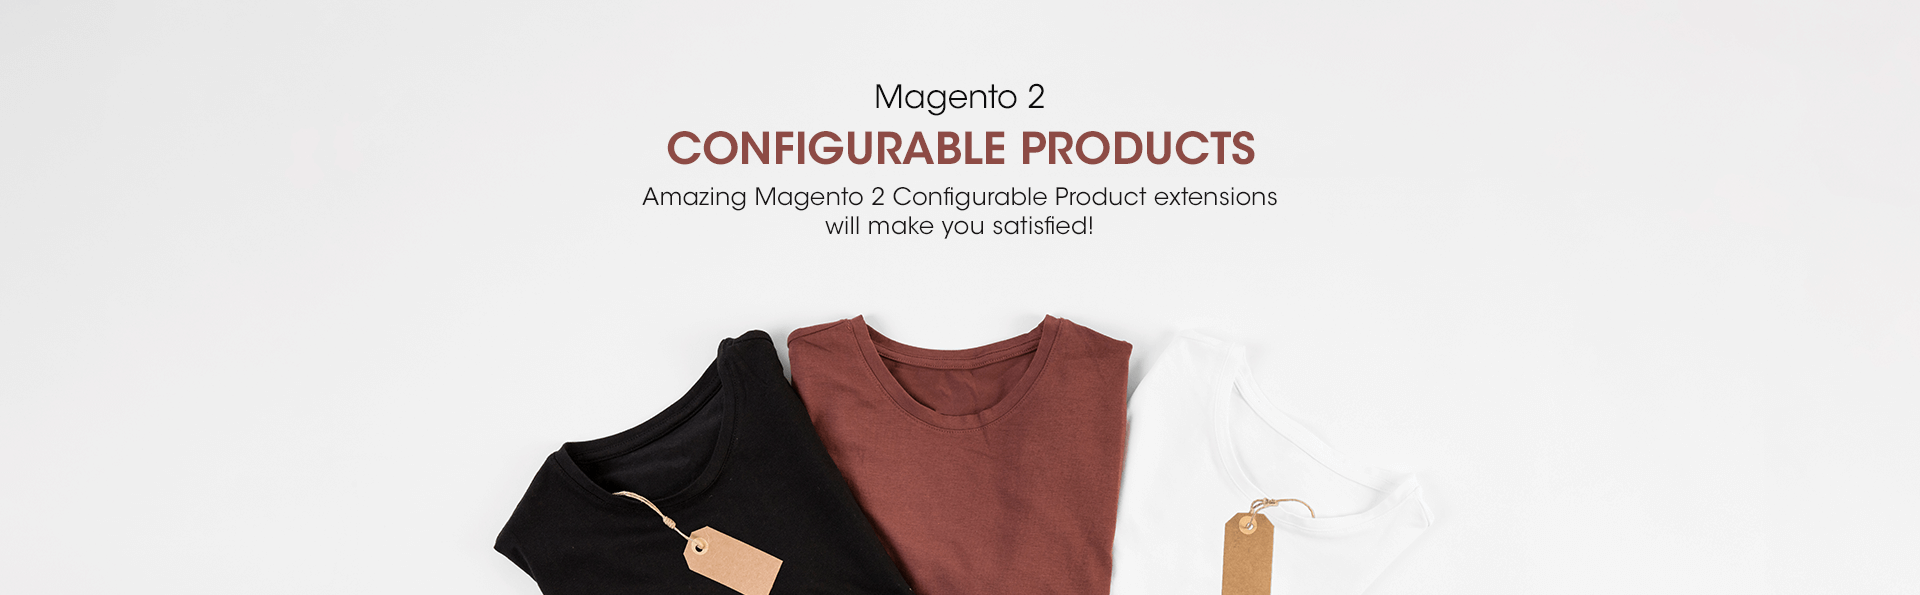 magento 2 configurable products extensions